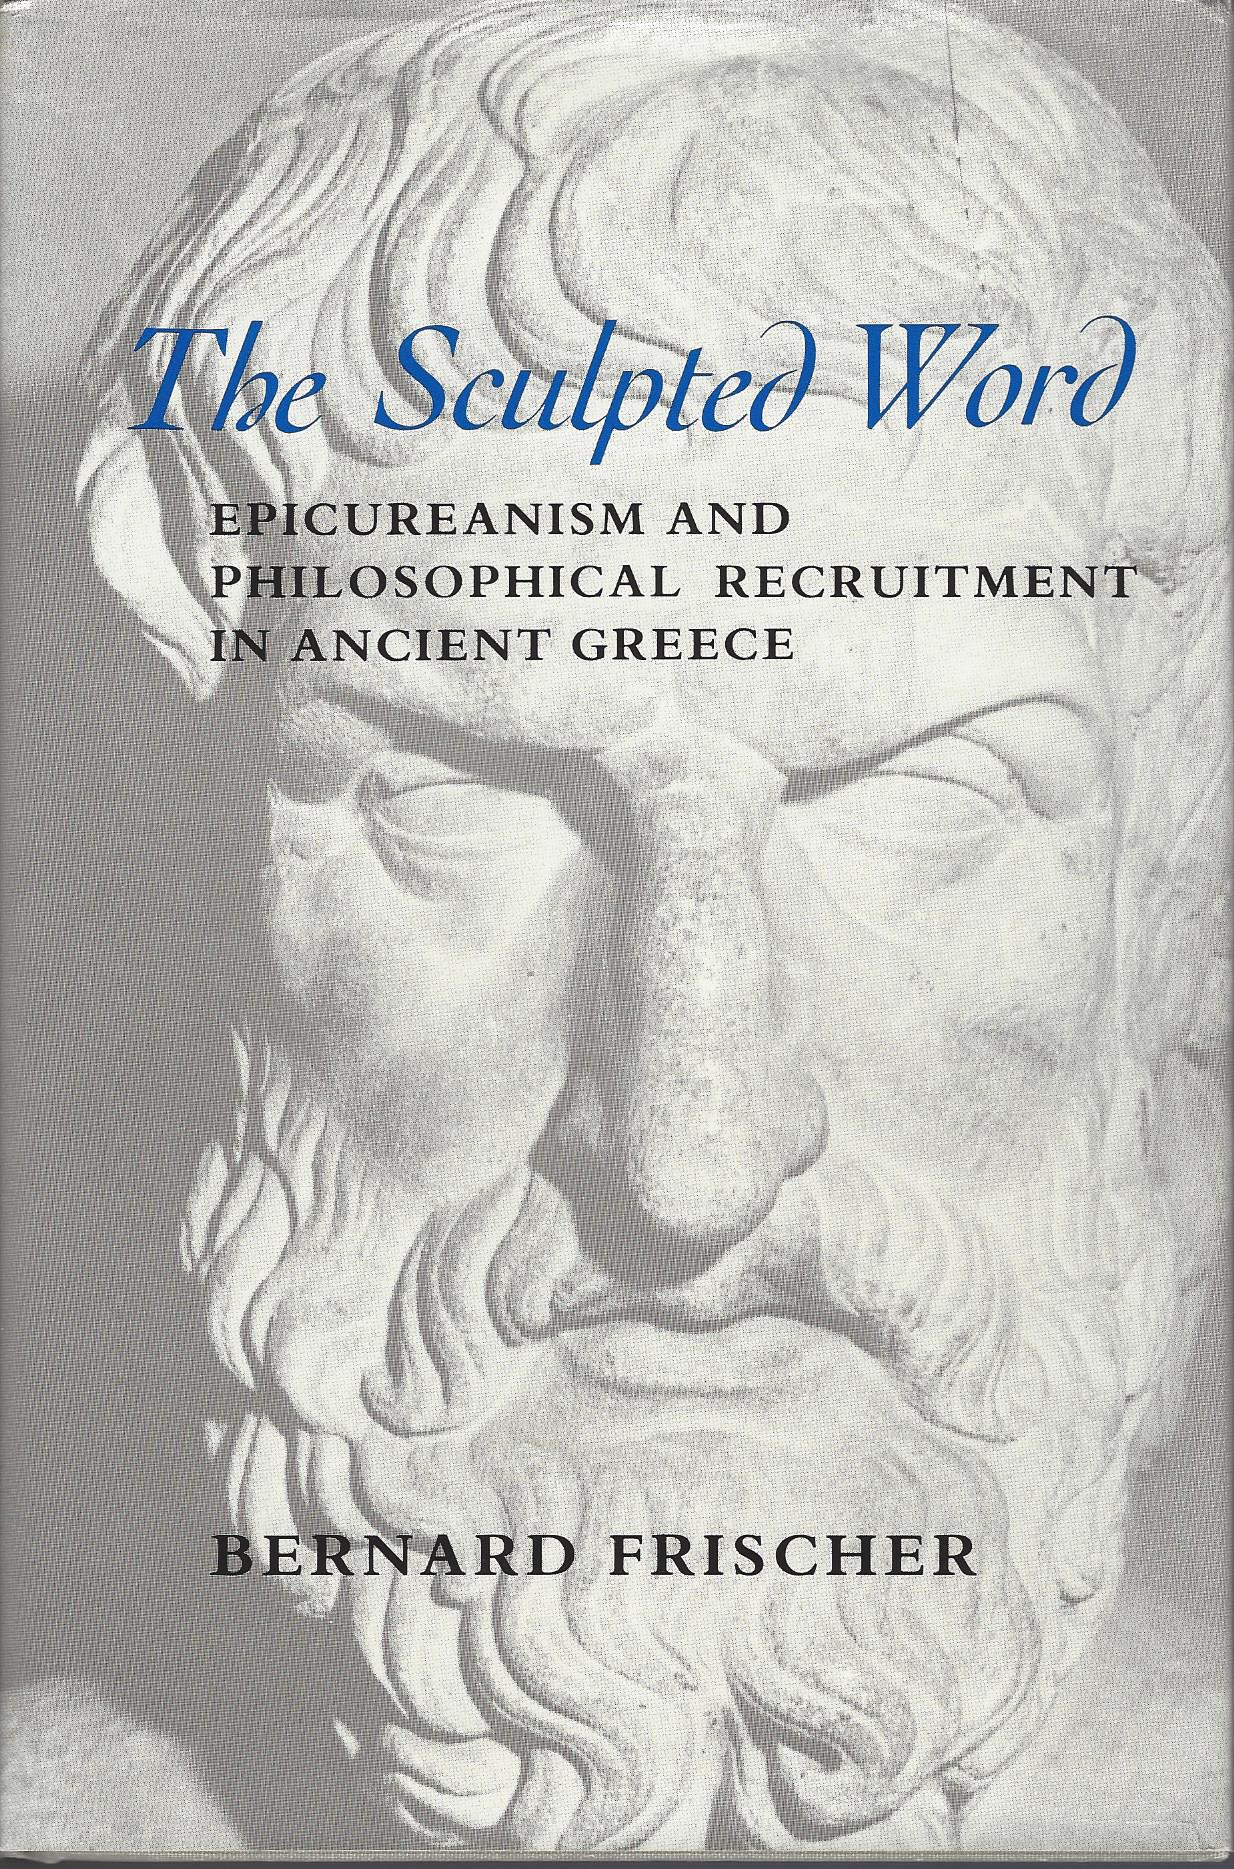 The Sculpted Word: Epicureanism and Philosophical Recruitment (print edition, 1982; revised e-book, 2006)